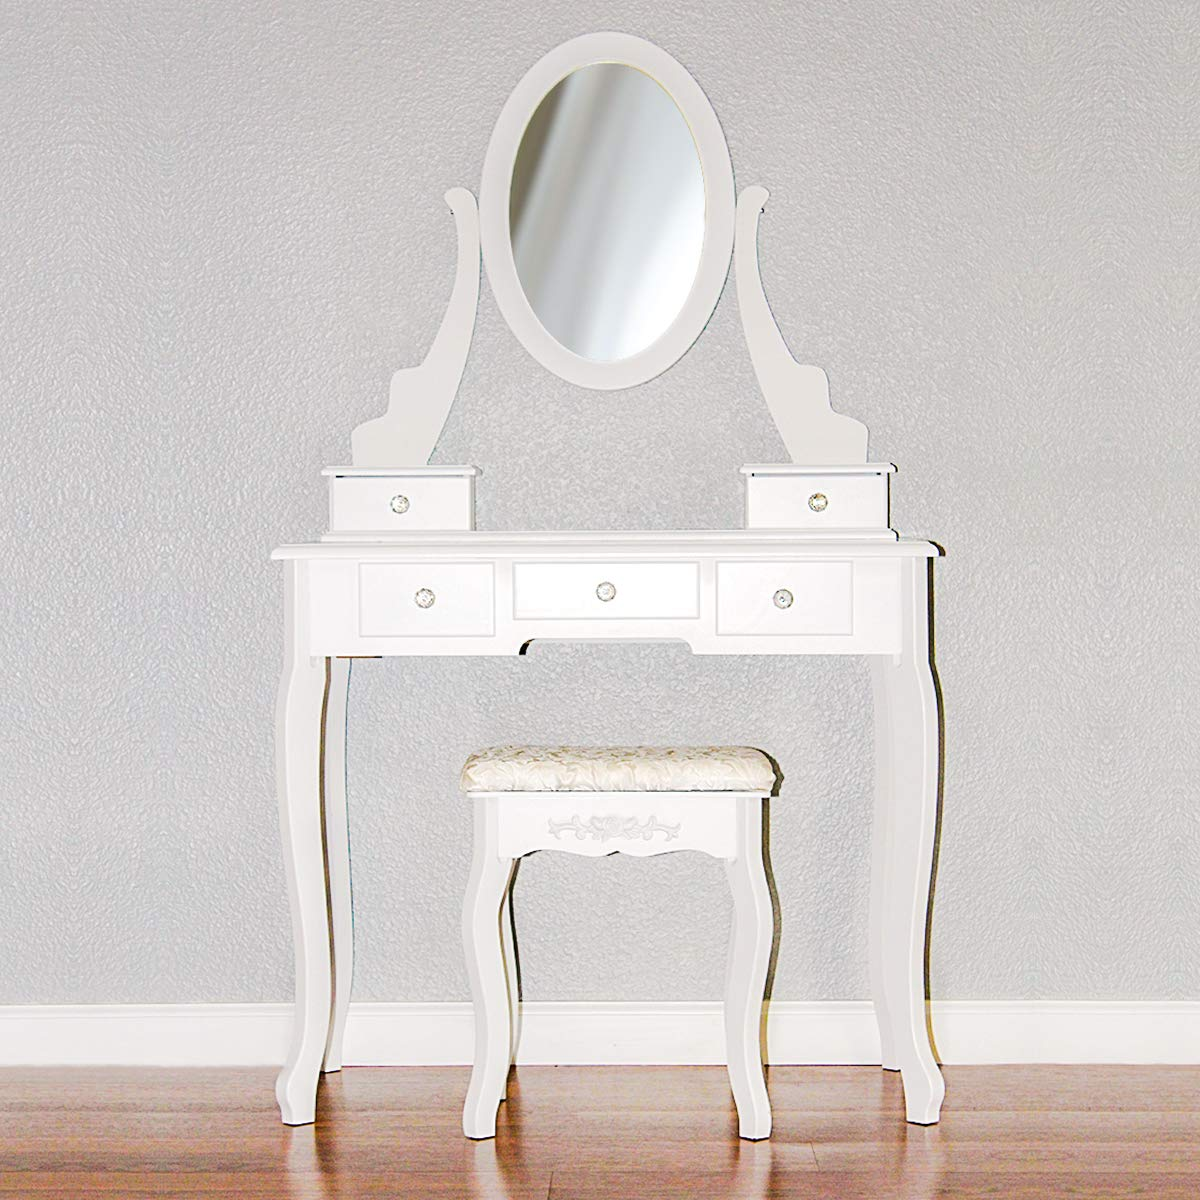 Makeup Vanity Table Set Women Girls Oval Mirror Dressing Desk Modern Vanity Set with Cushioned Stool 5 Drawers White by SimLife